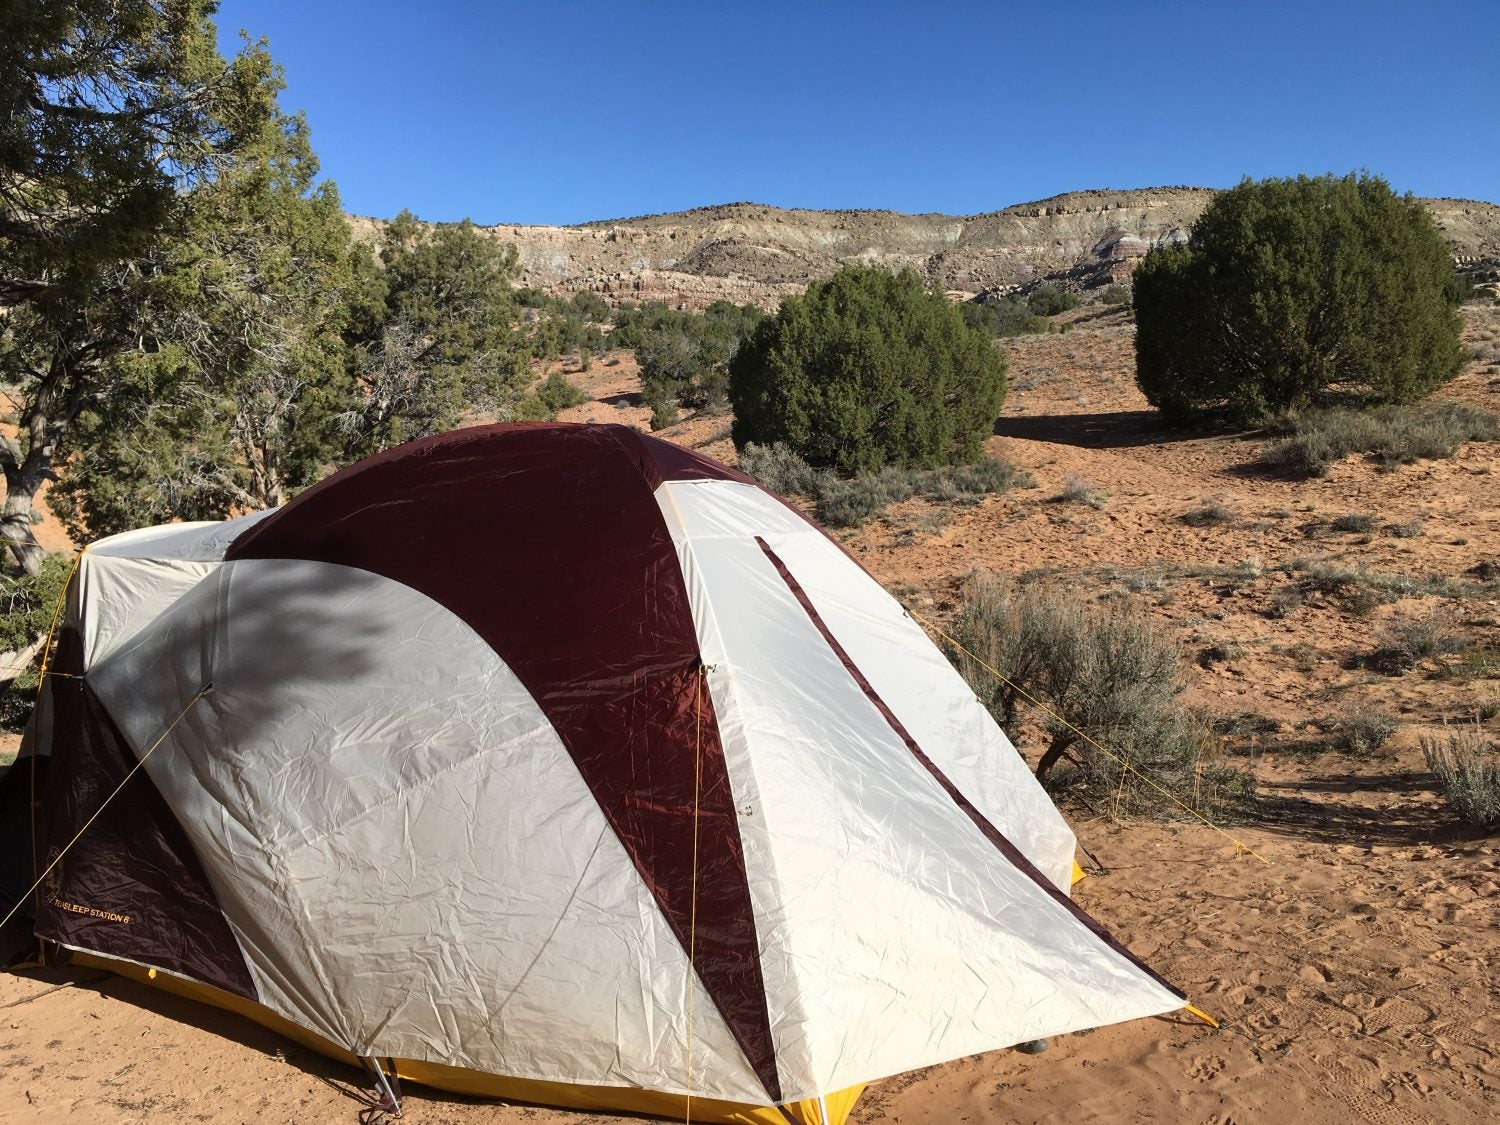 colorado desert campsite with tent